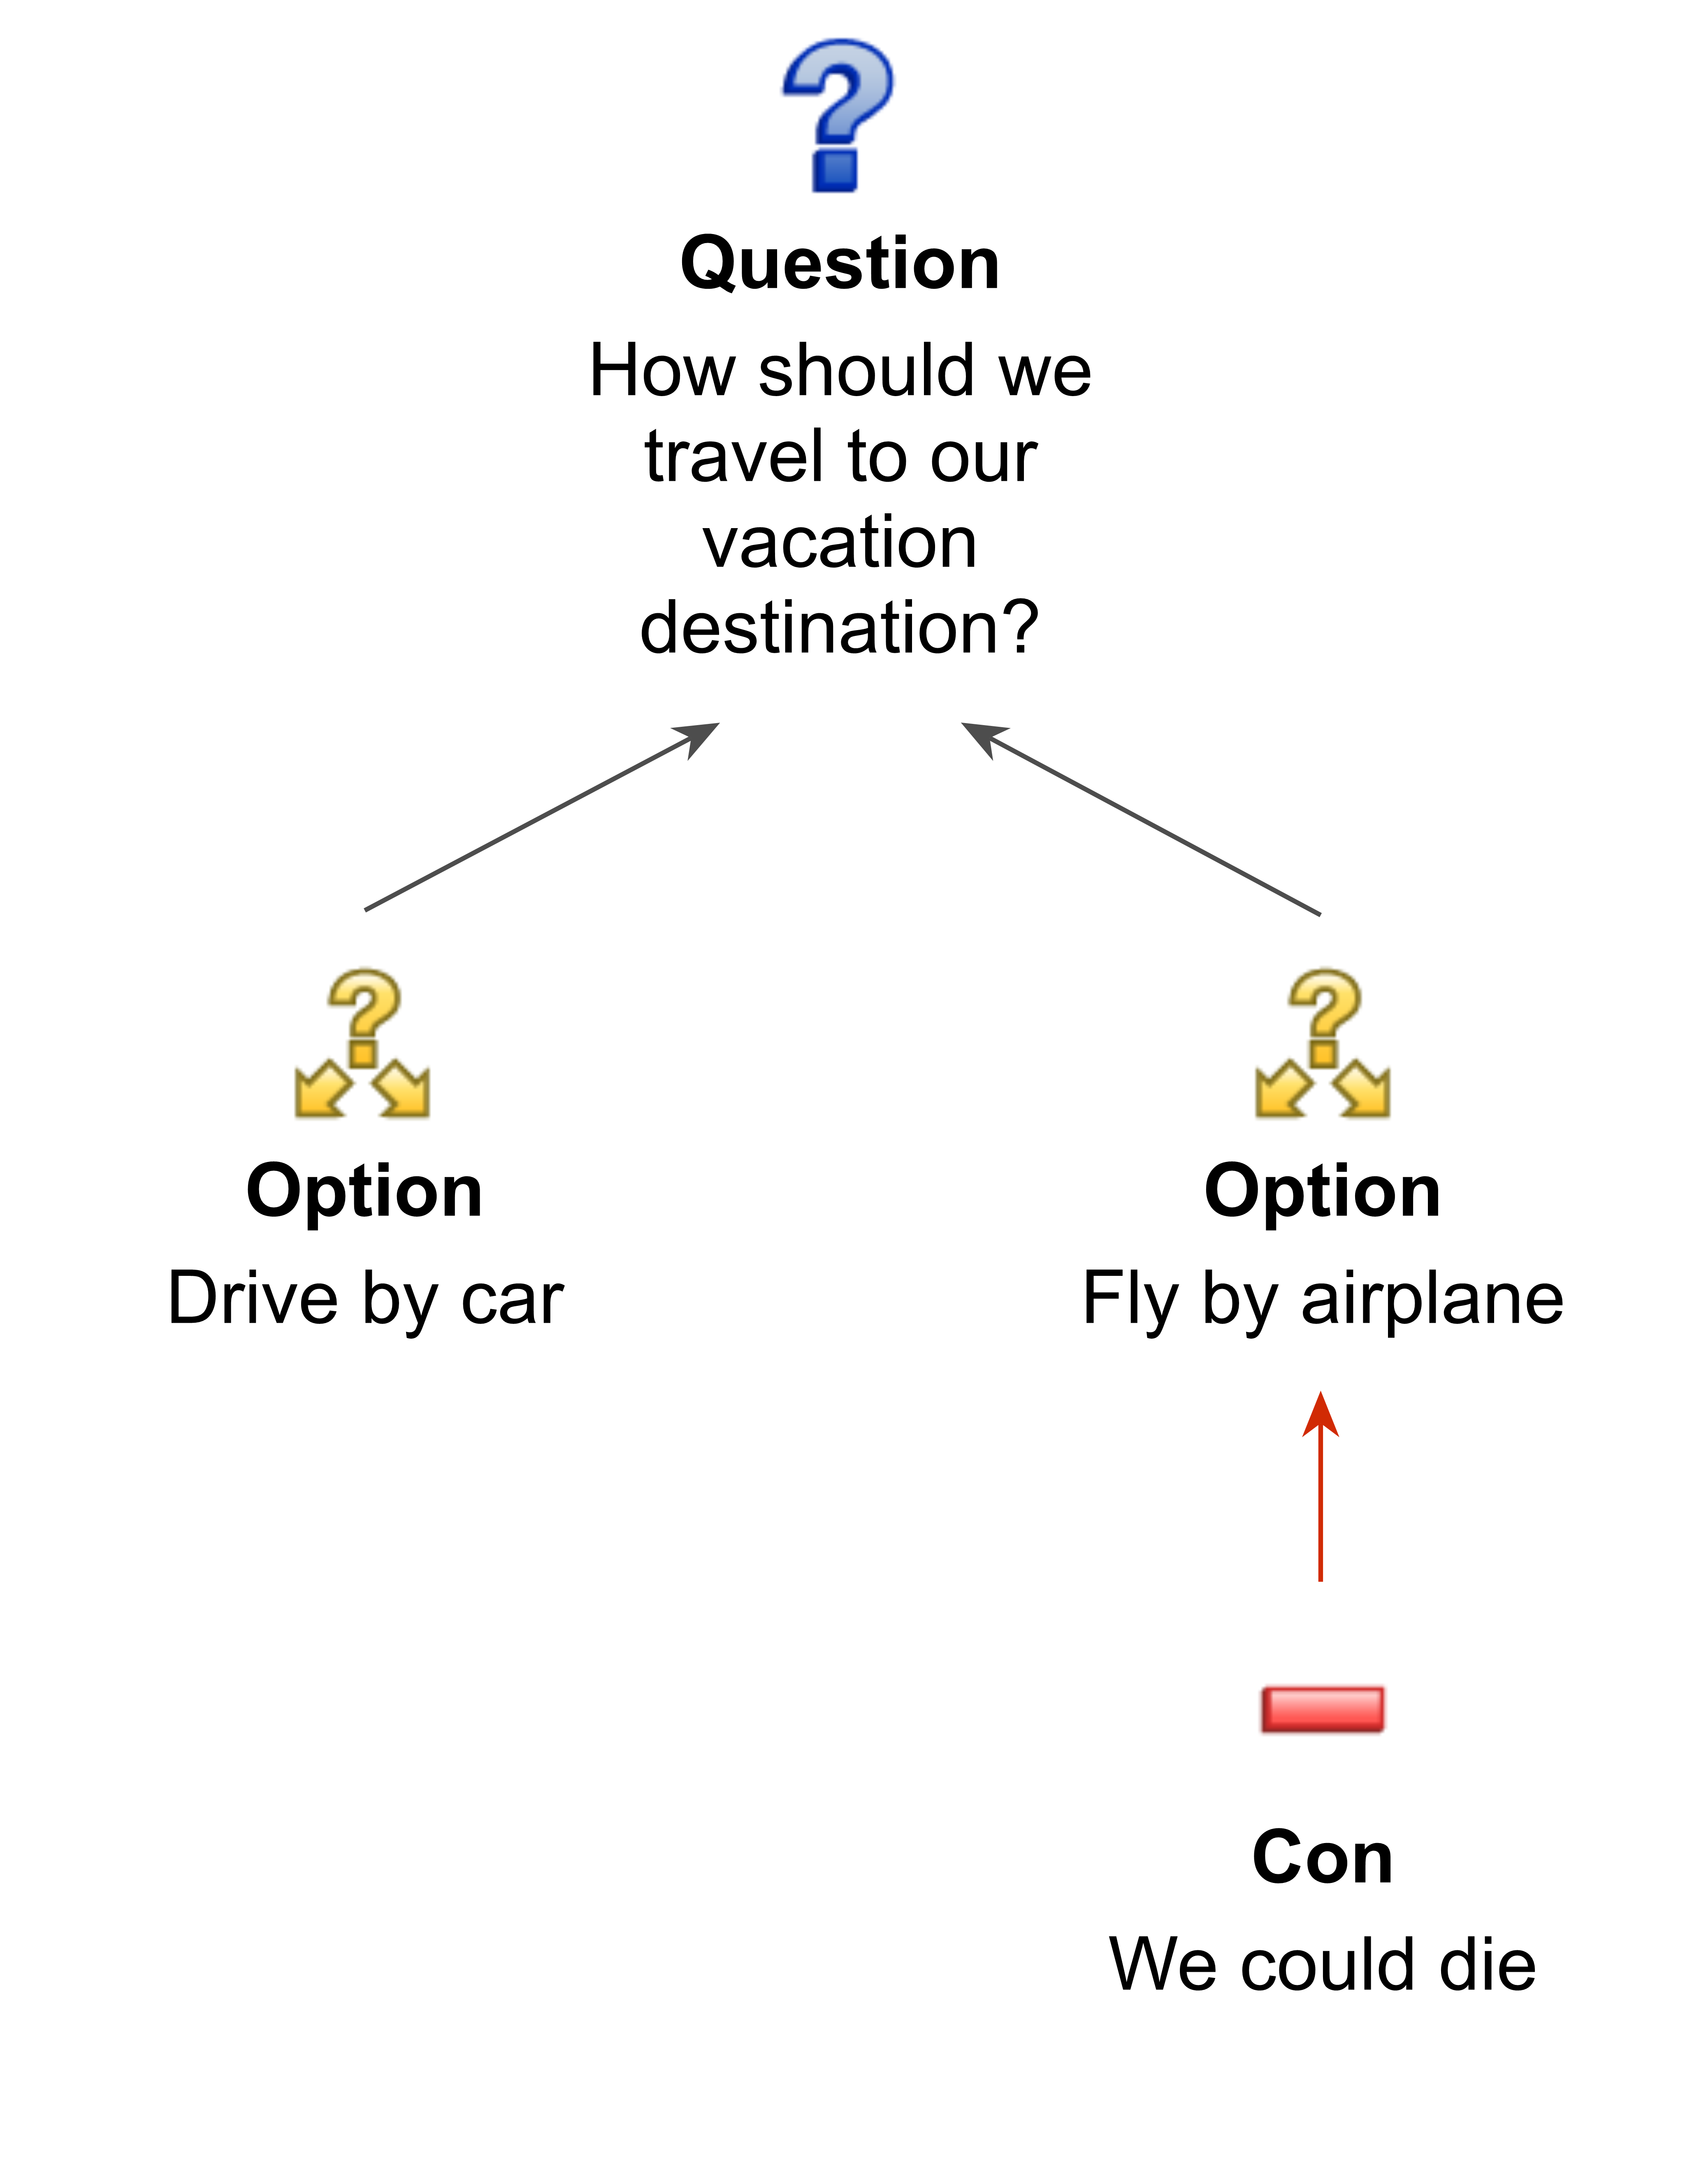 Decision-map of how to travel to our vacation destination